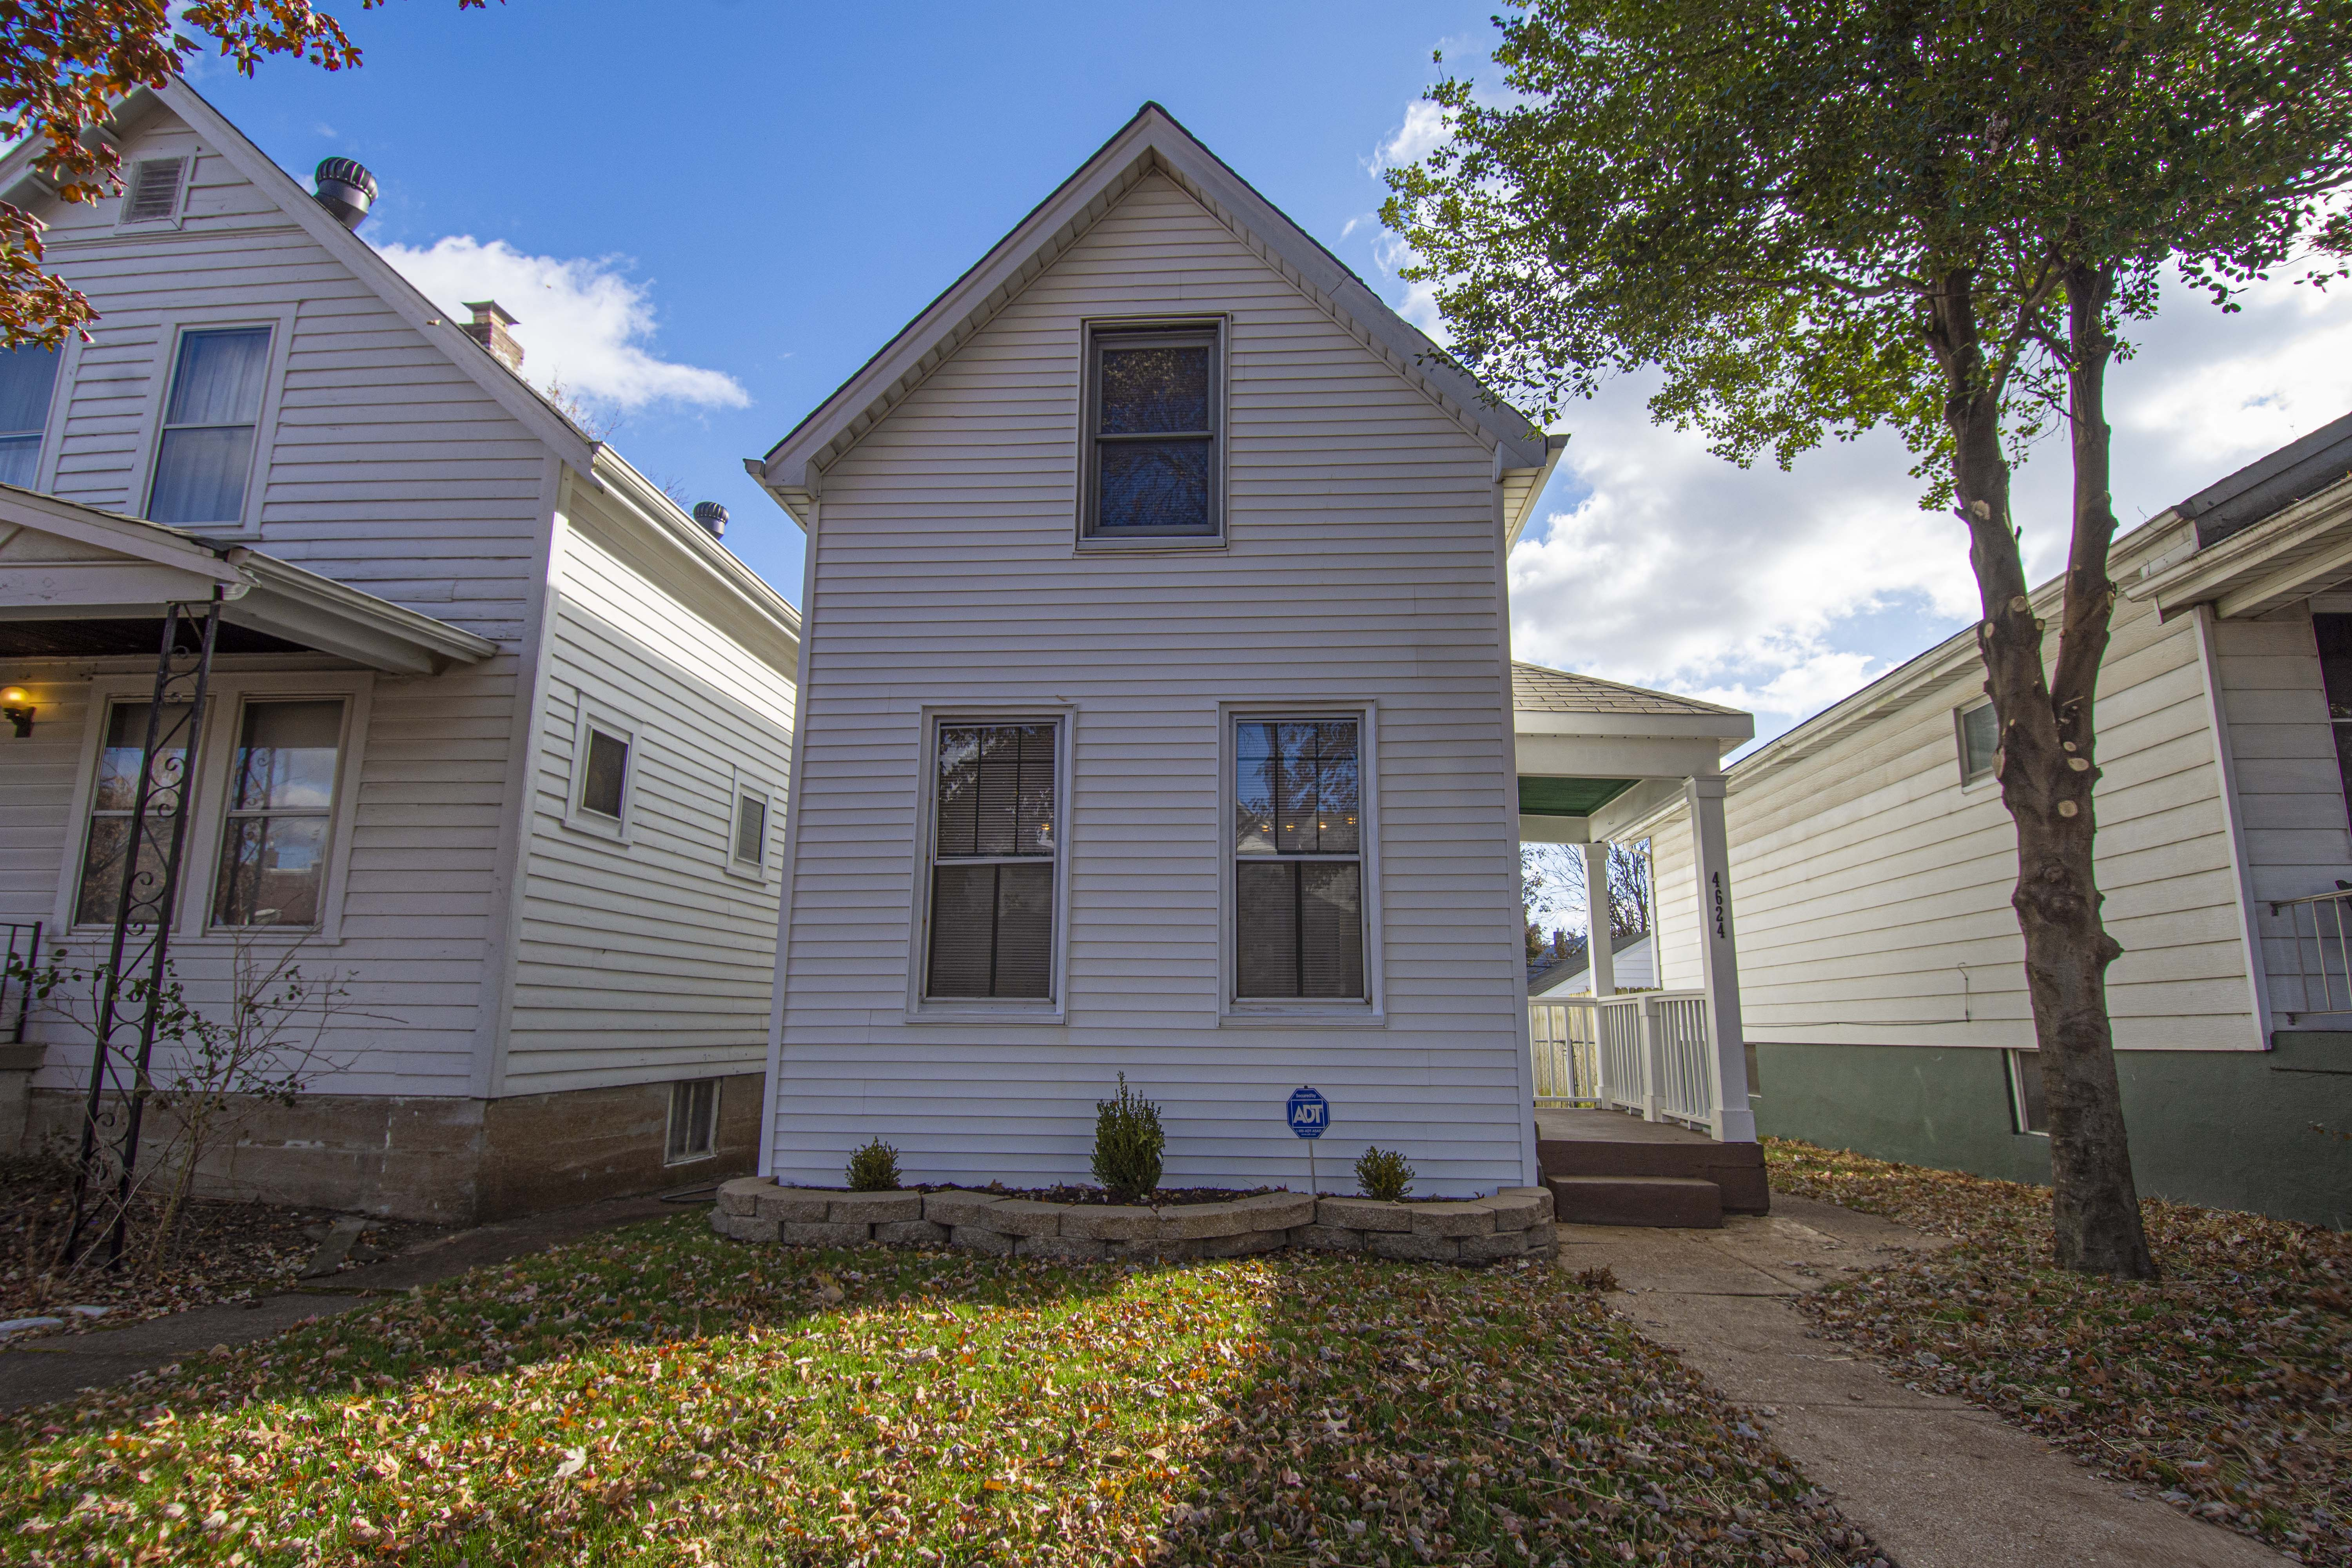 4624 Adkins St Louis MO 63116 Bevo Neighborhood 3 bdrm / 1 ba